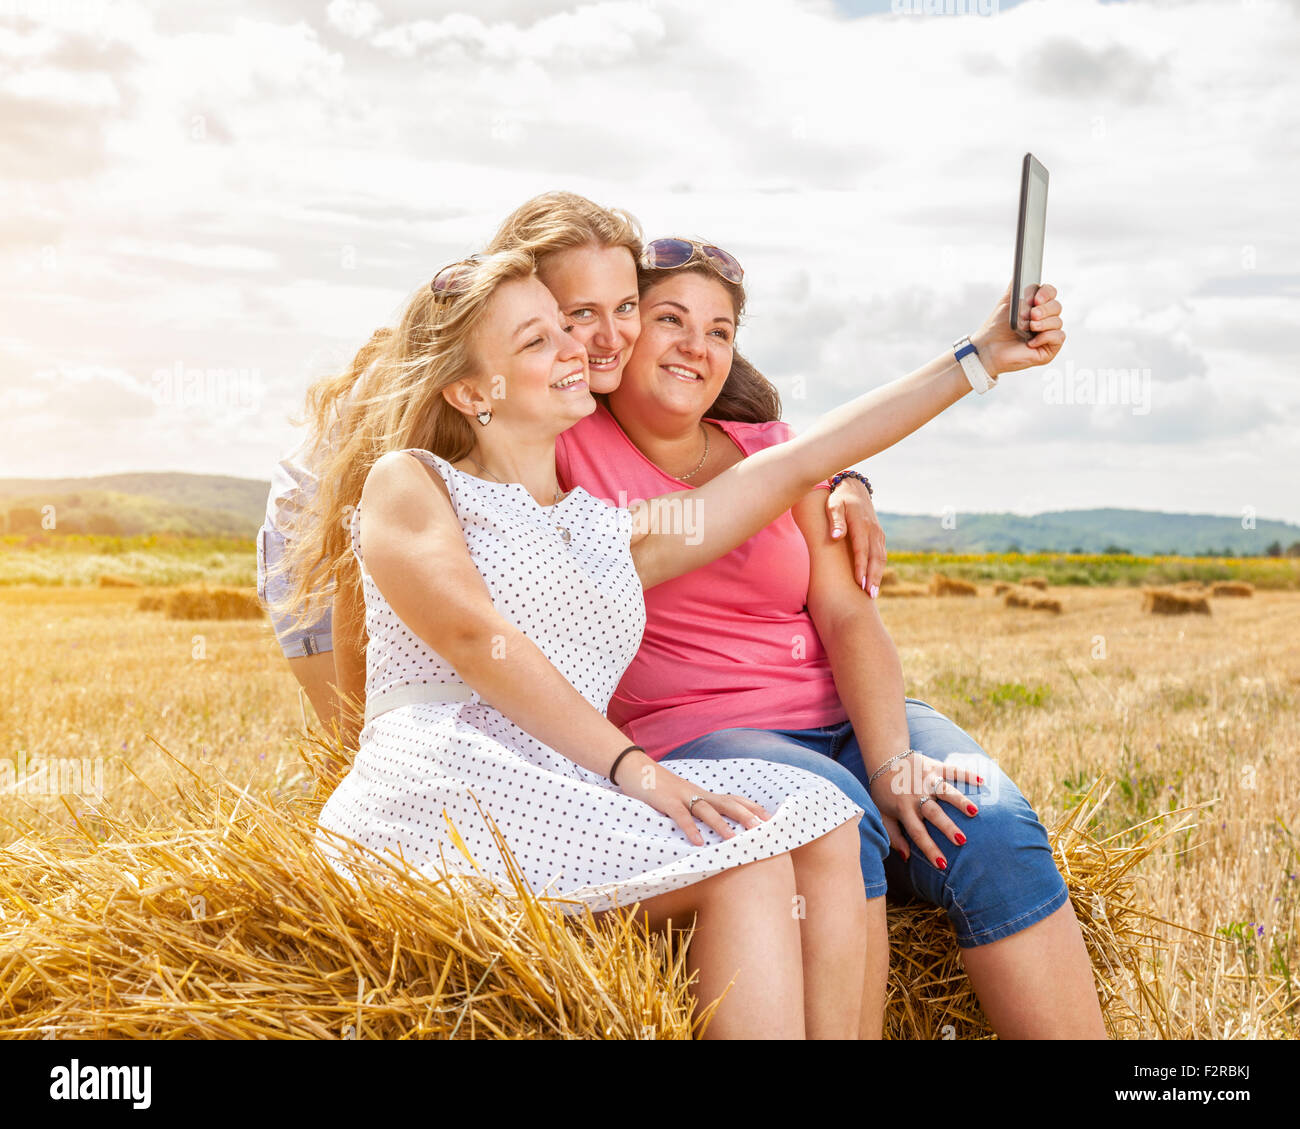 Three Best Friends Taking A Selfie Outdoors Stock Photo 87795222